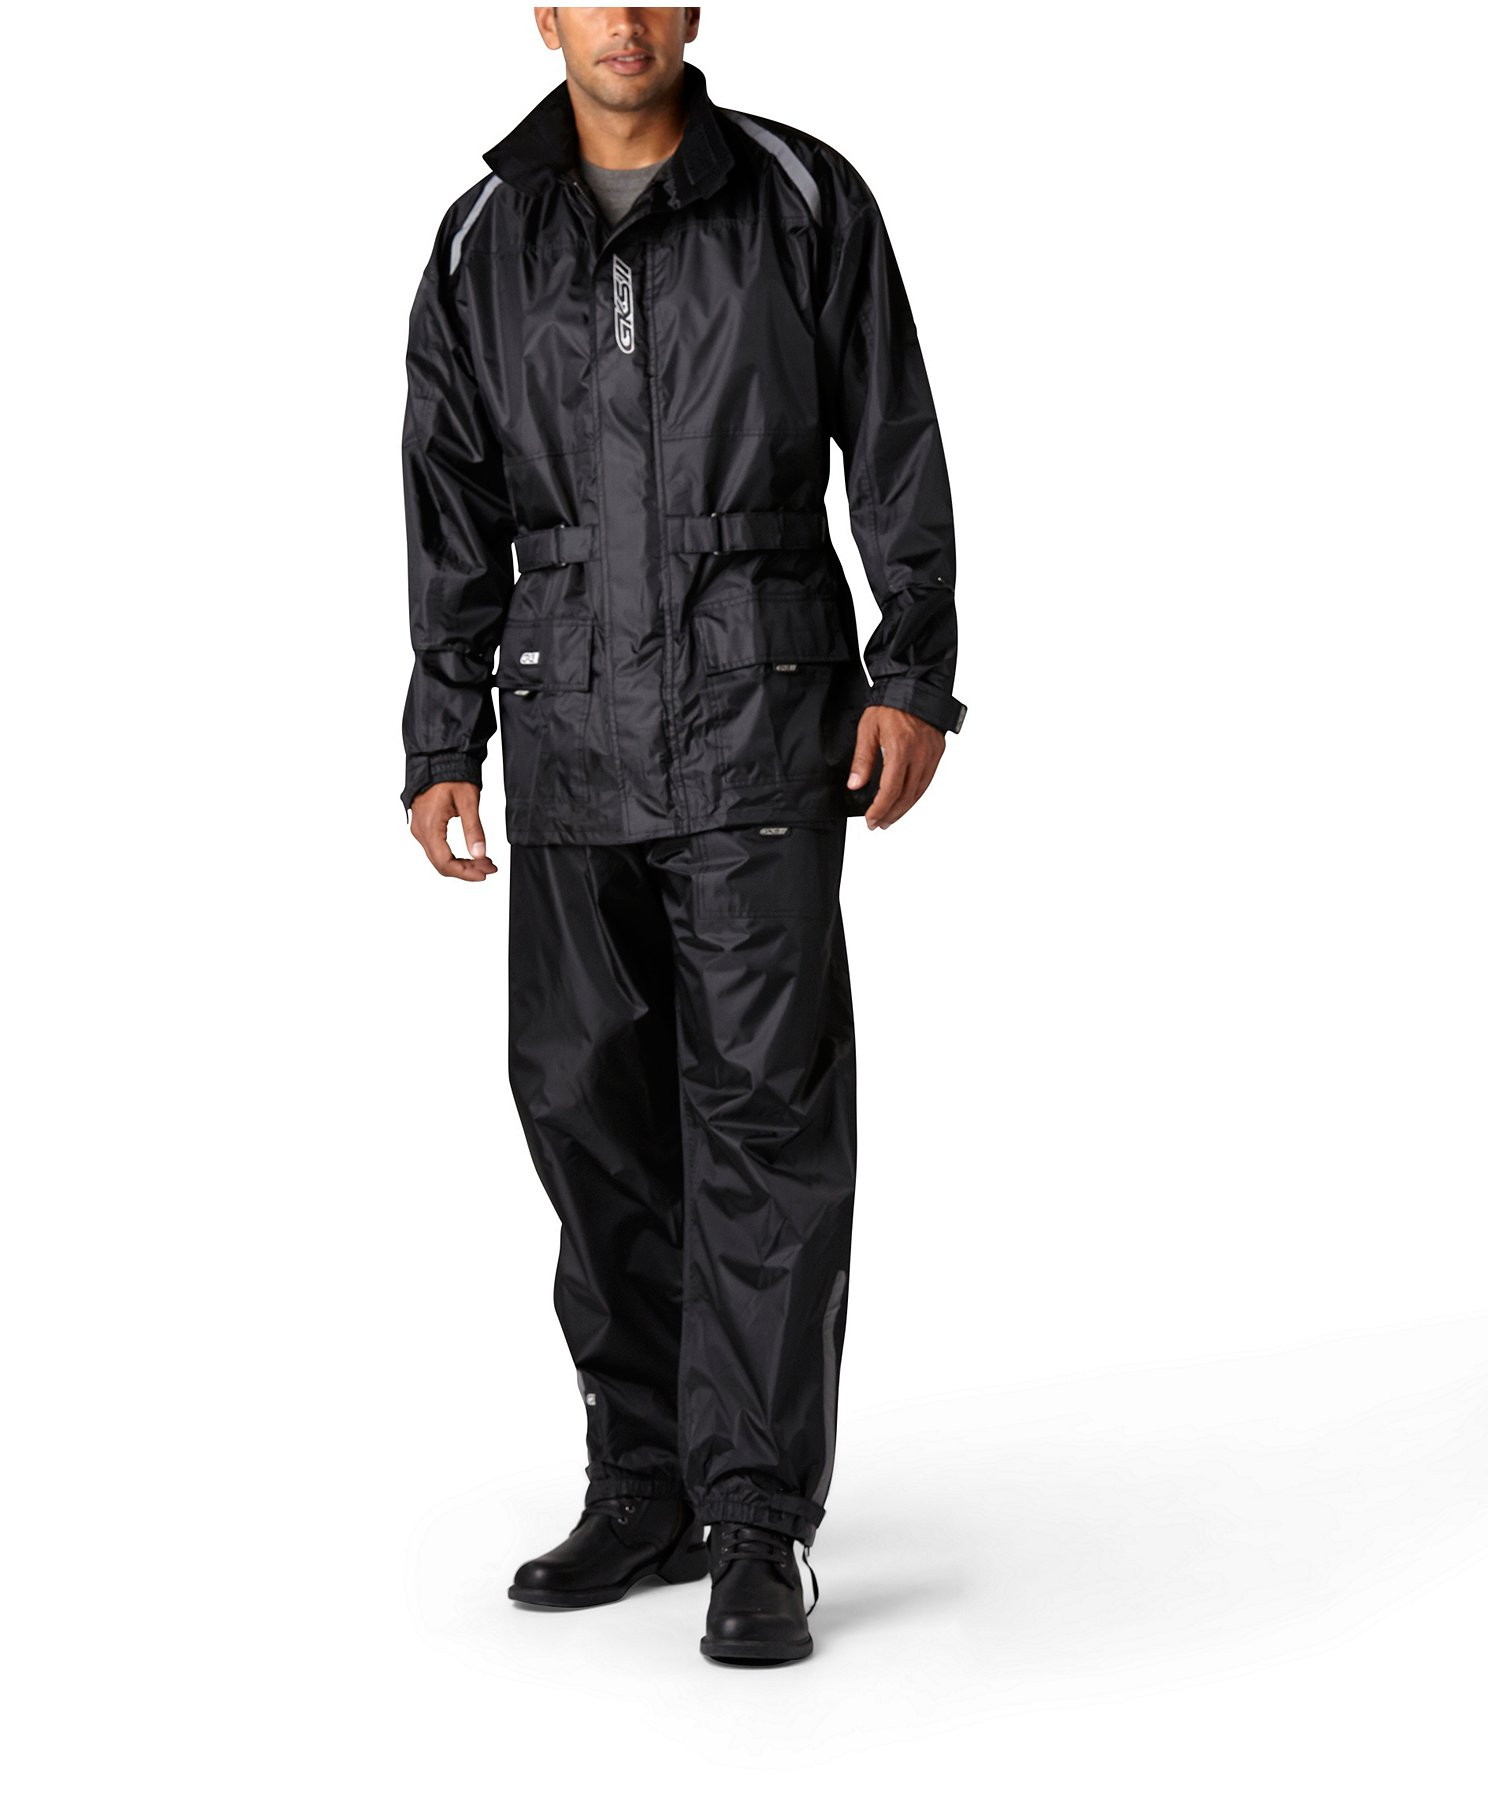 on feet at shop for official first look Men's Two-Piece Motorcycle Rainsuit